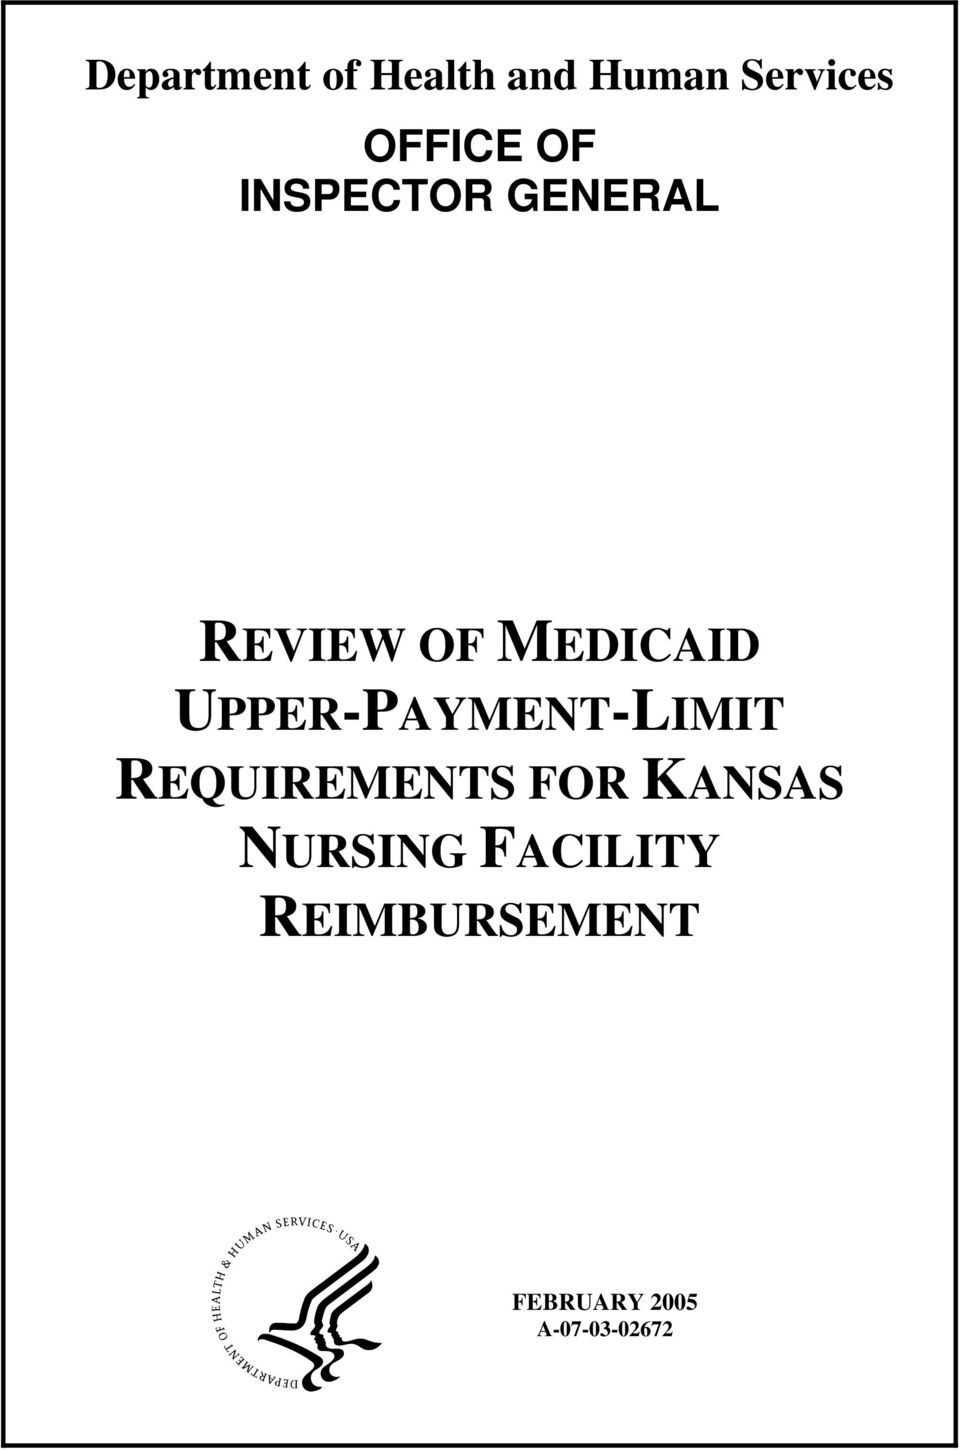 UPPER-PAYMENT-LIMIT REQUIREMENTS FOR KANSAS